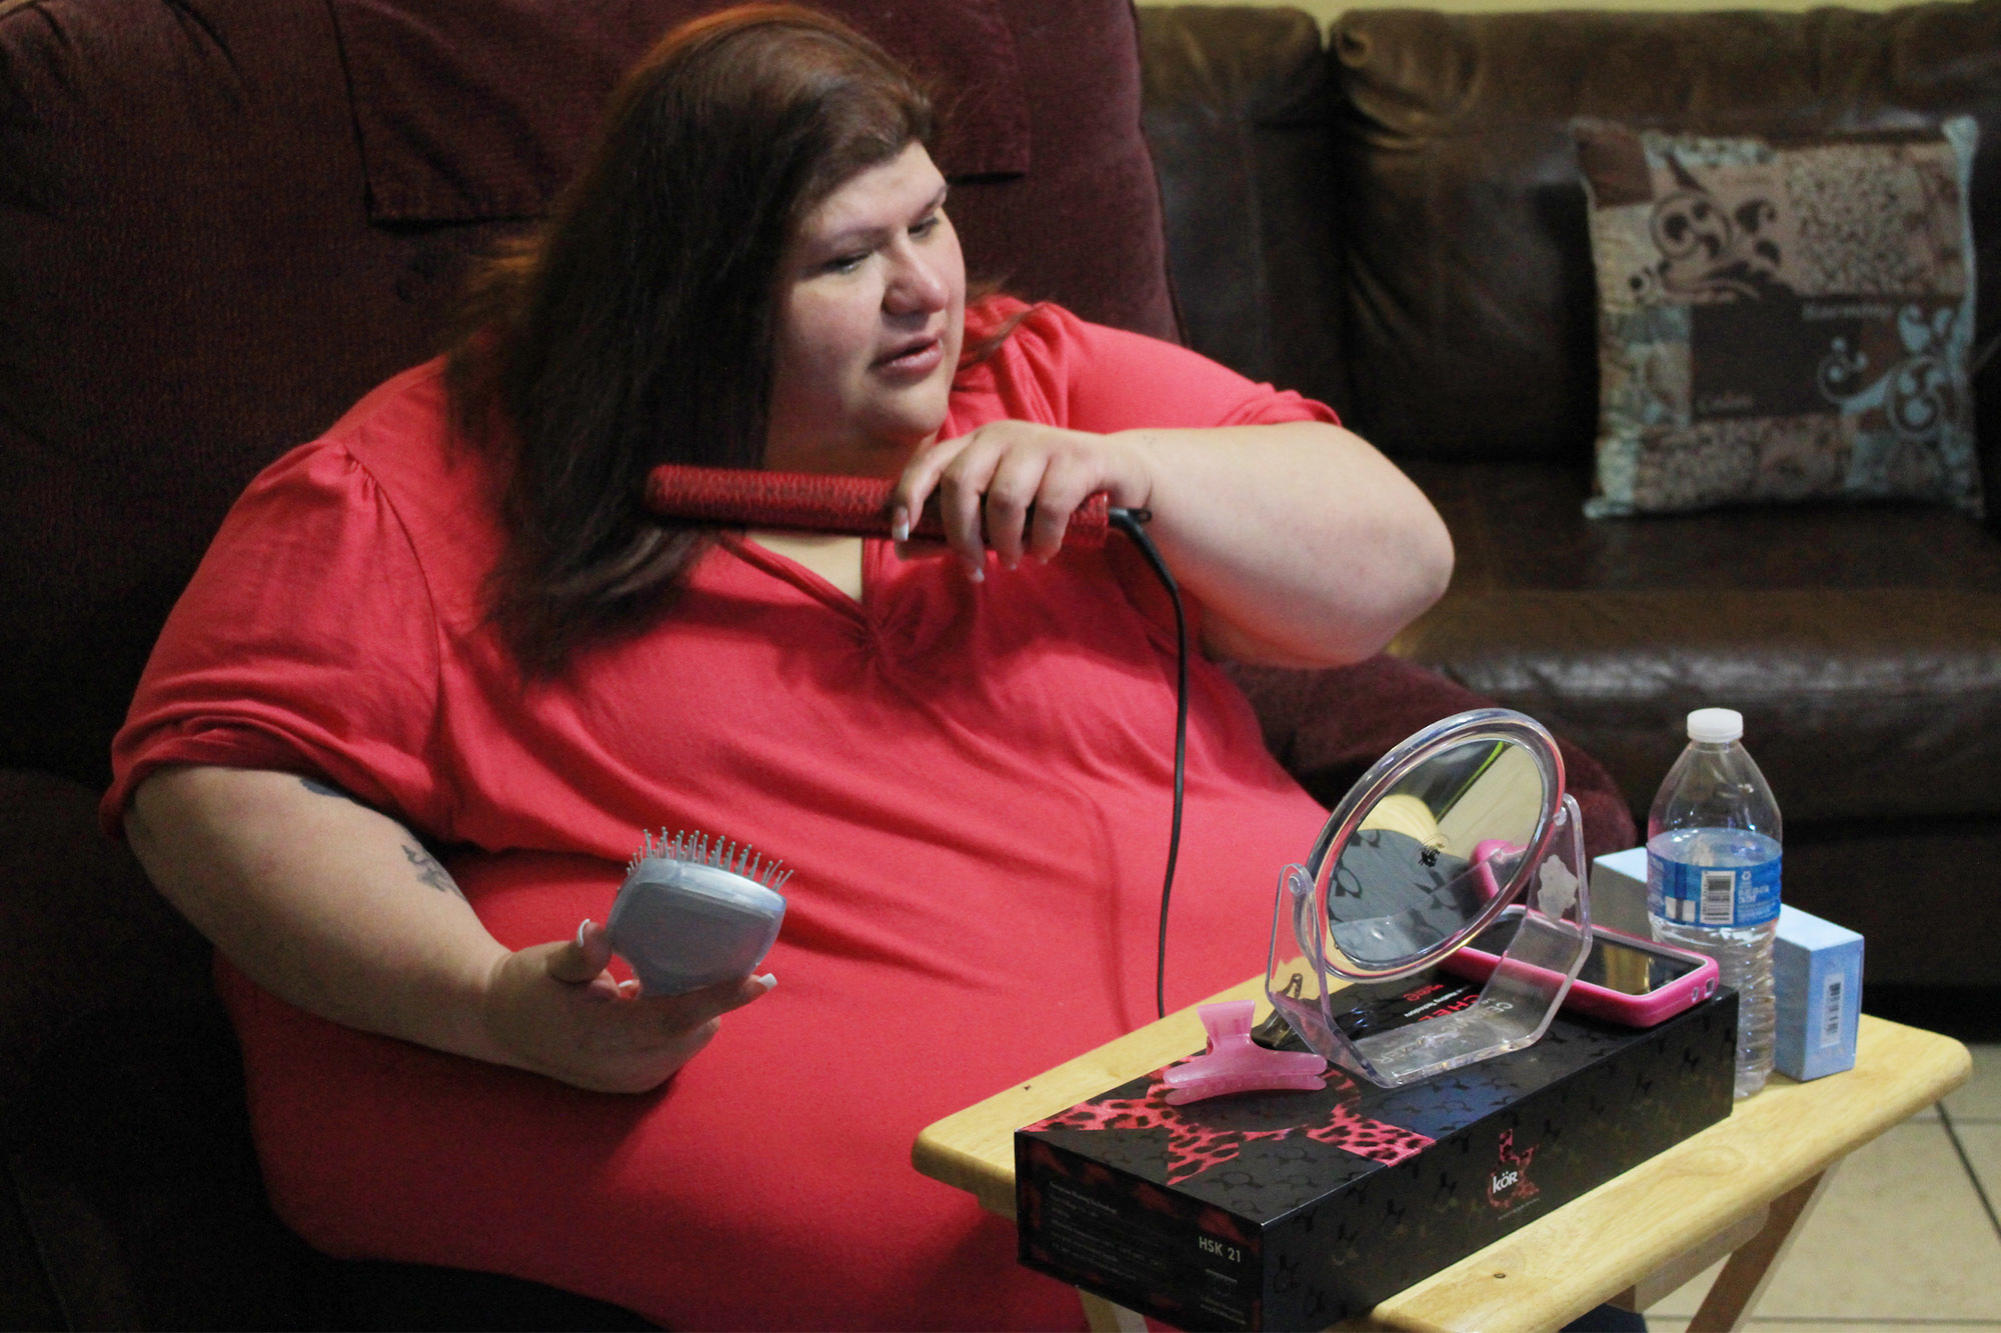 My 600 Pound Life Updates Chay My 600 Lb Life Chay Is 23 Addicted To Food With Very Chay S